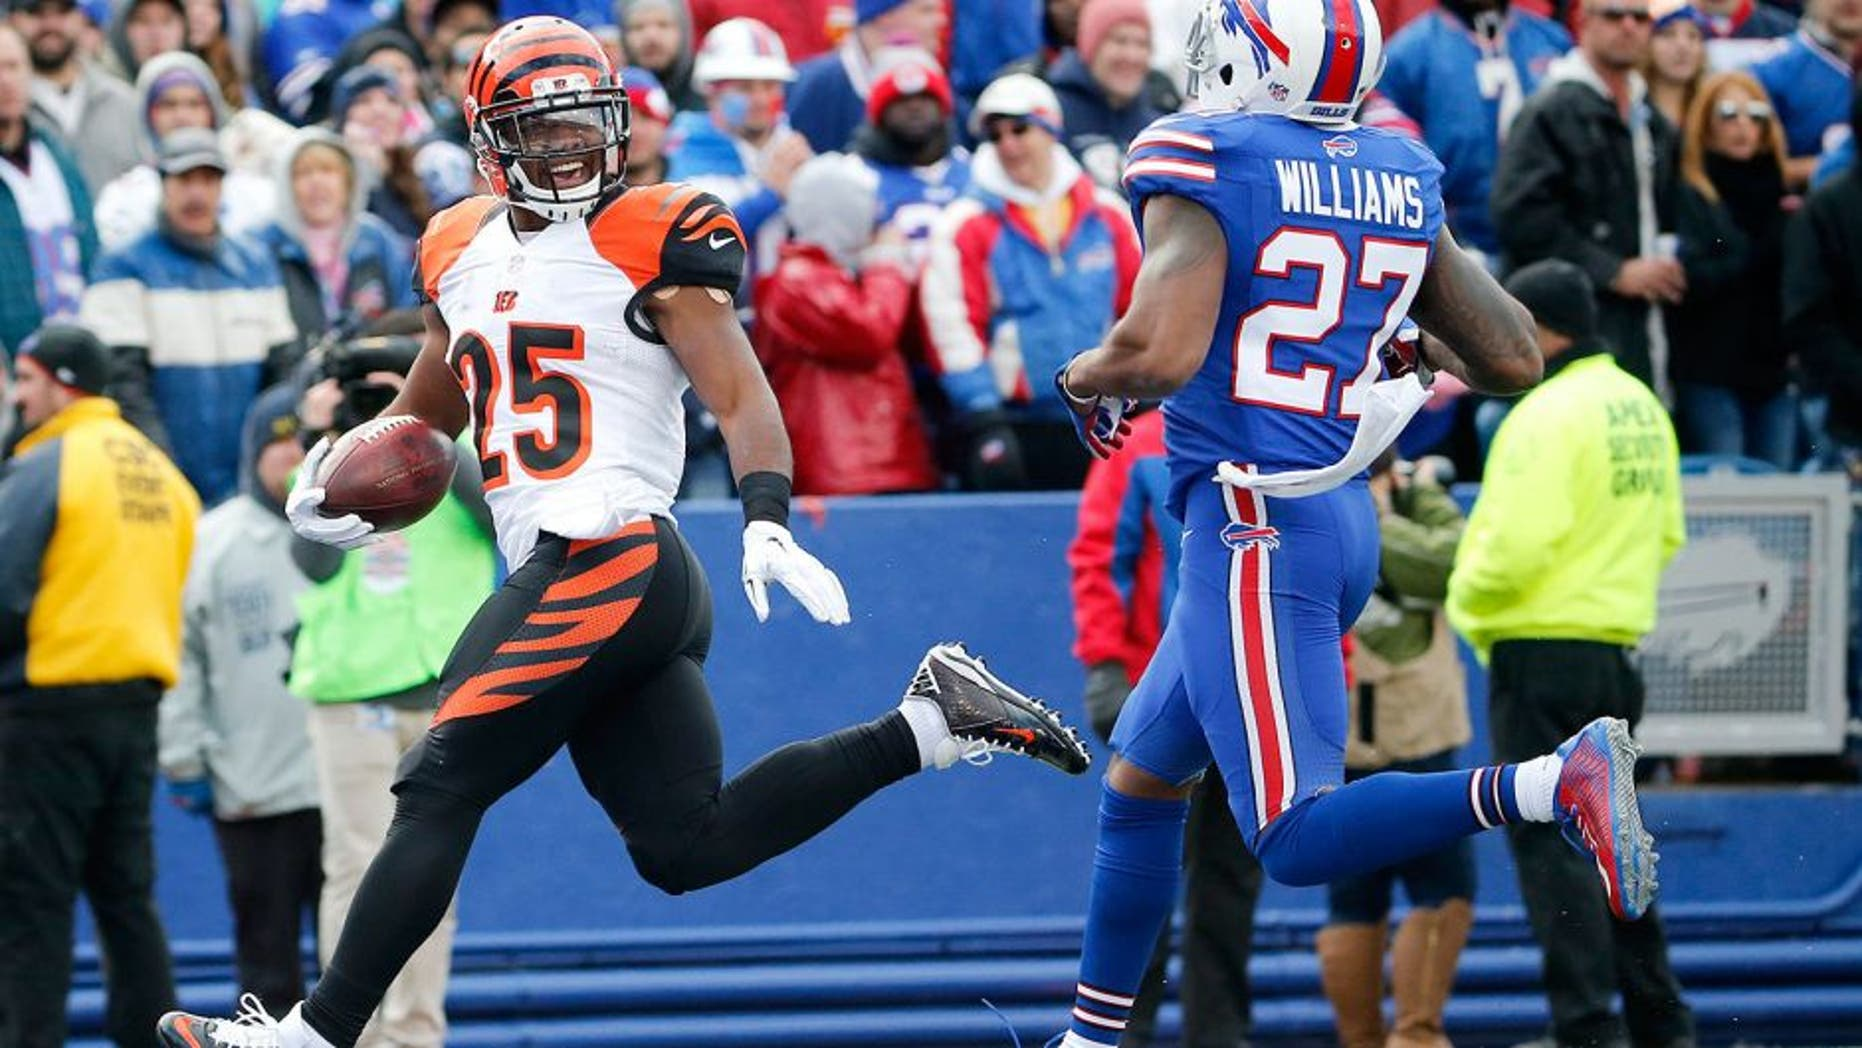 Cincinnati Bengals running back Giovani Bernard (25) gets past Buffalo Bills strong safety Duke Williams (27) for a touchdown during the first half of an NFL football game on Sunday, Oct. 18, 2015, in Orchard Park, N.Y. (AP Photo/Bill Wippert)